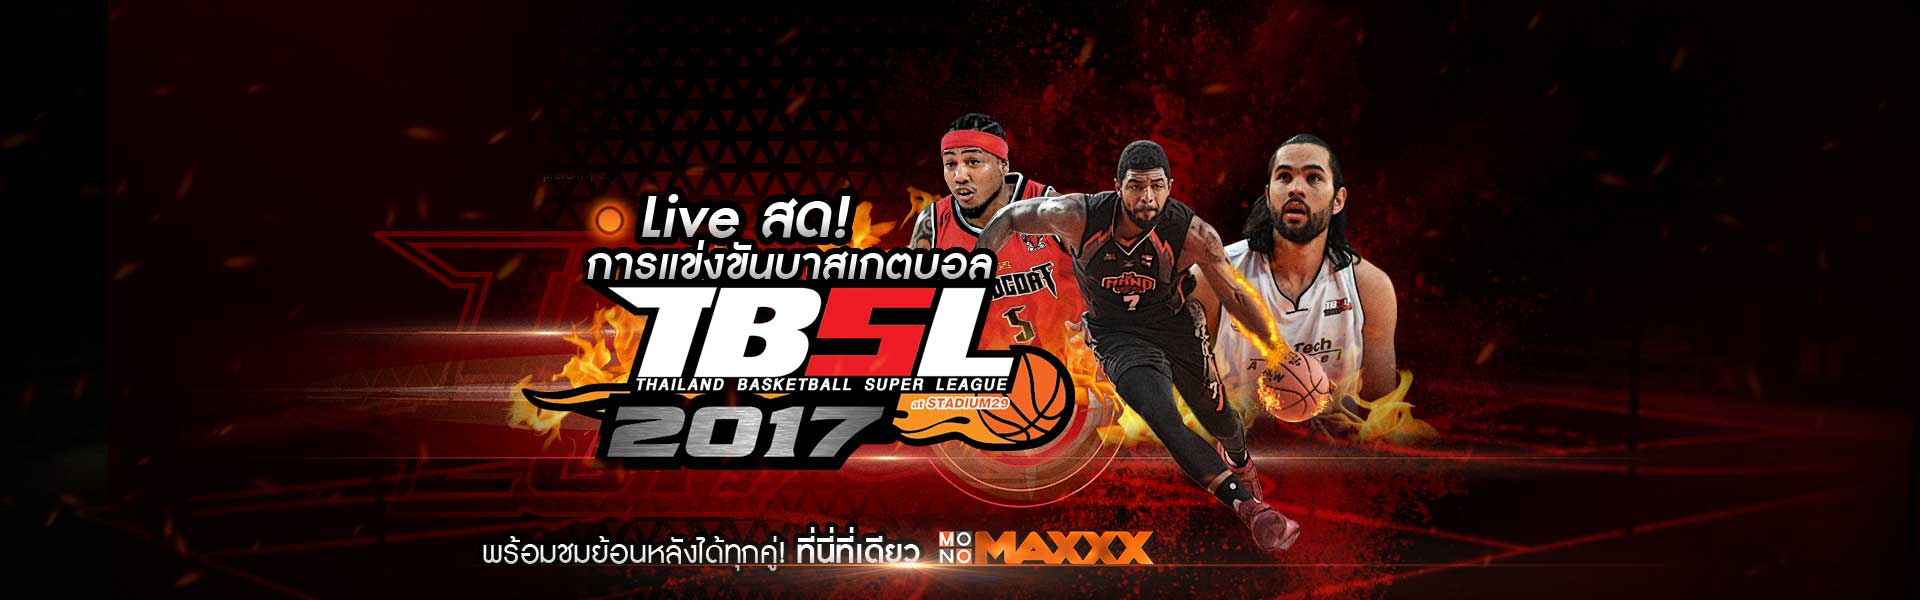 Thailand Basketball Super League 2017